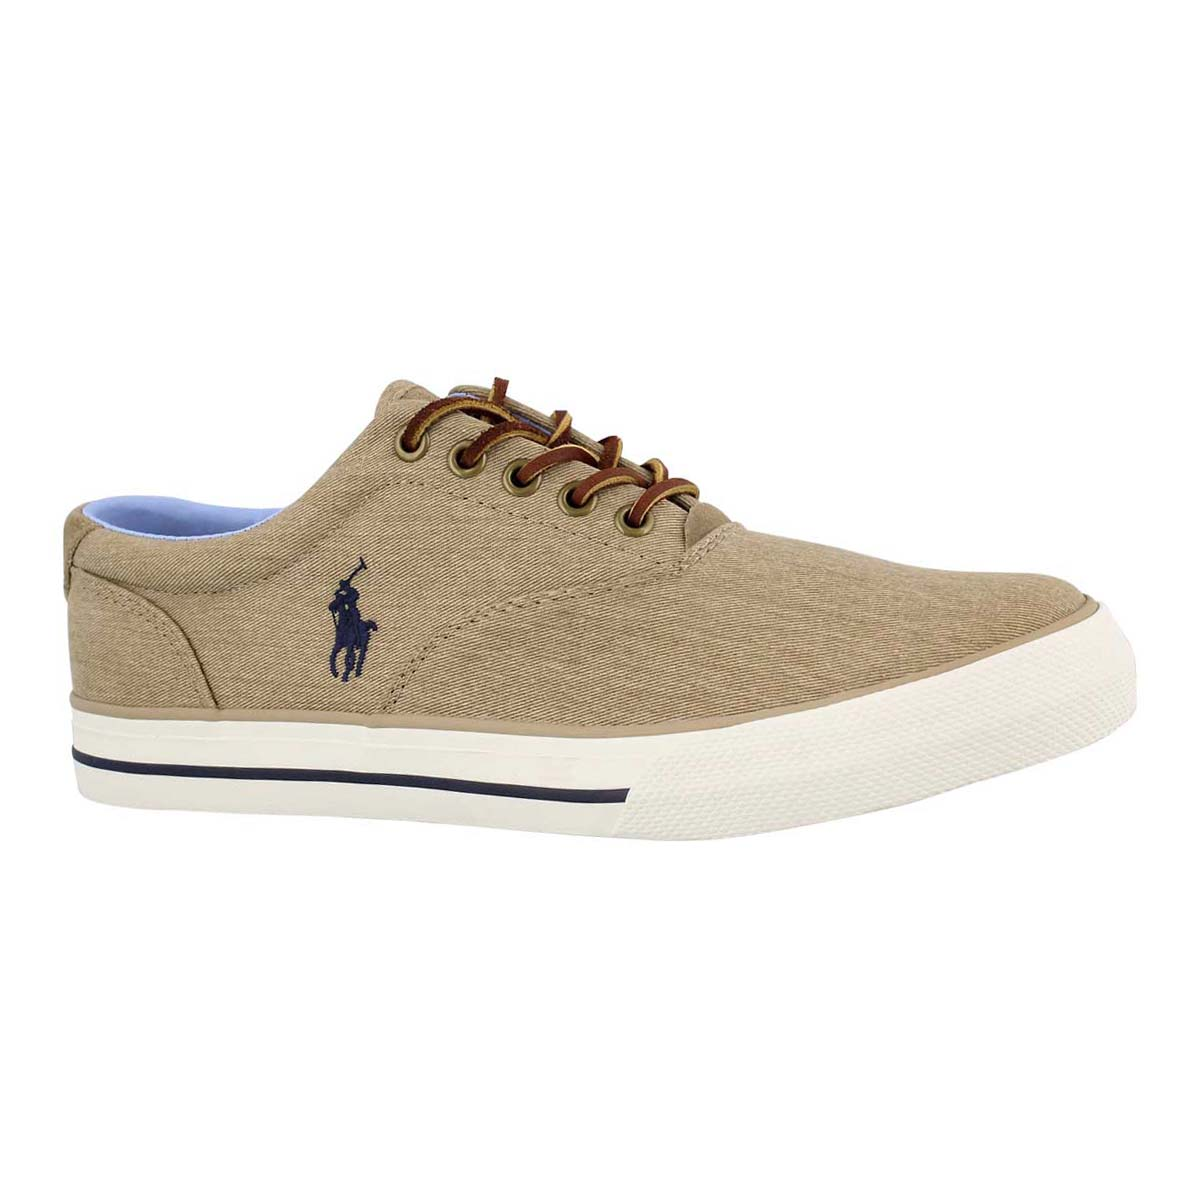 Mns Vaughn morgan tan wshd twill sneaker